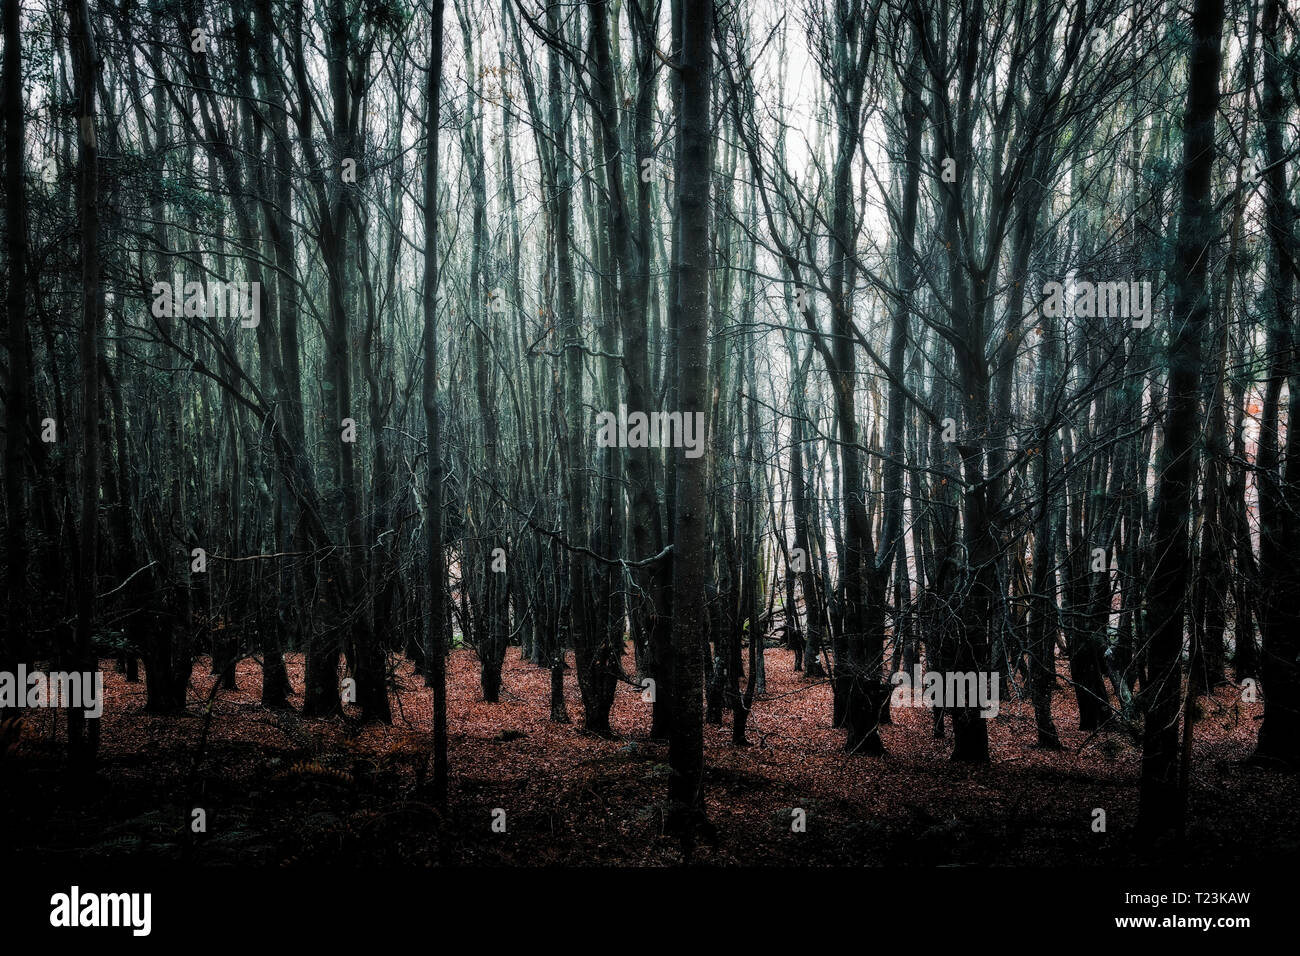 trees in a dark forest - Stock Image